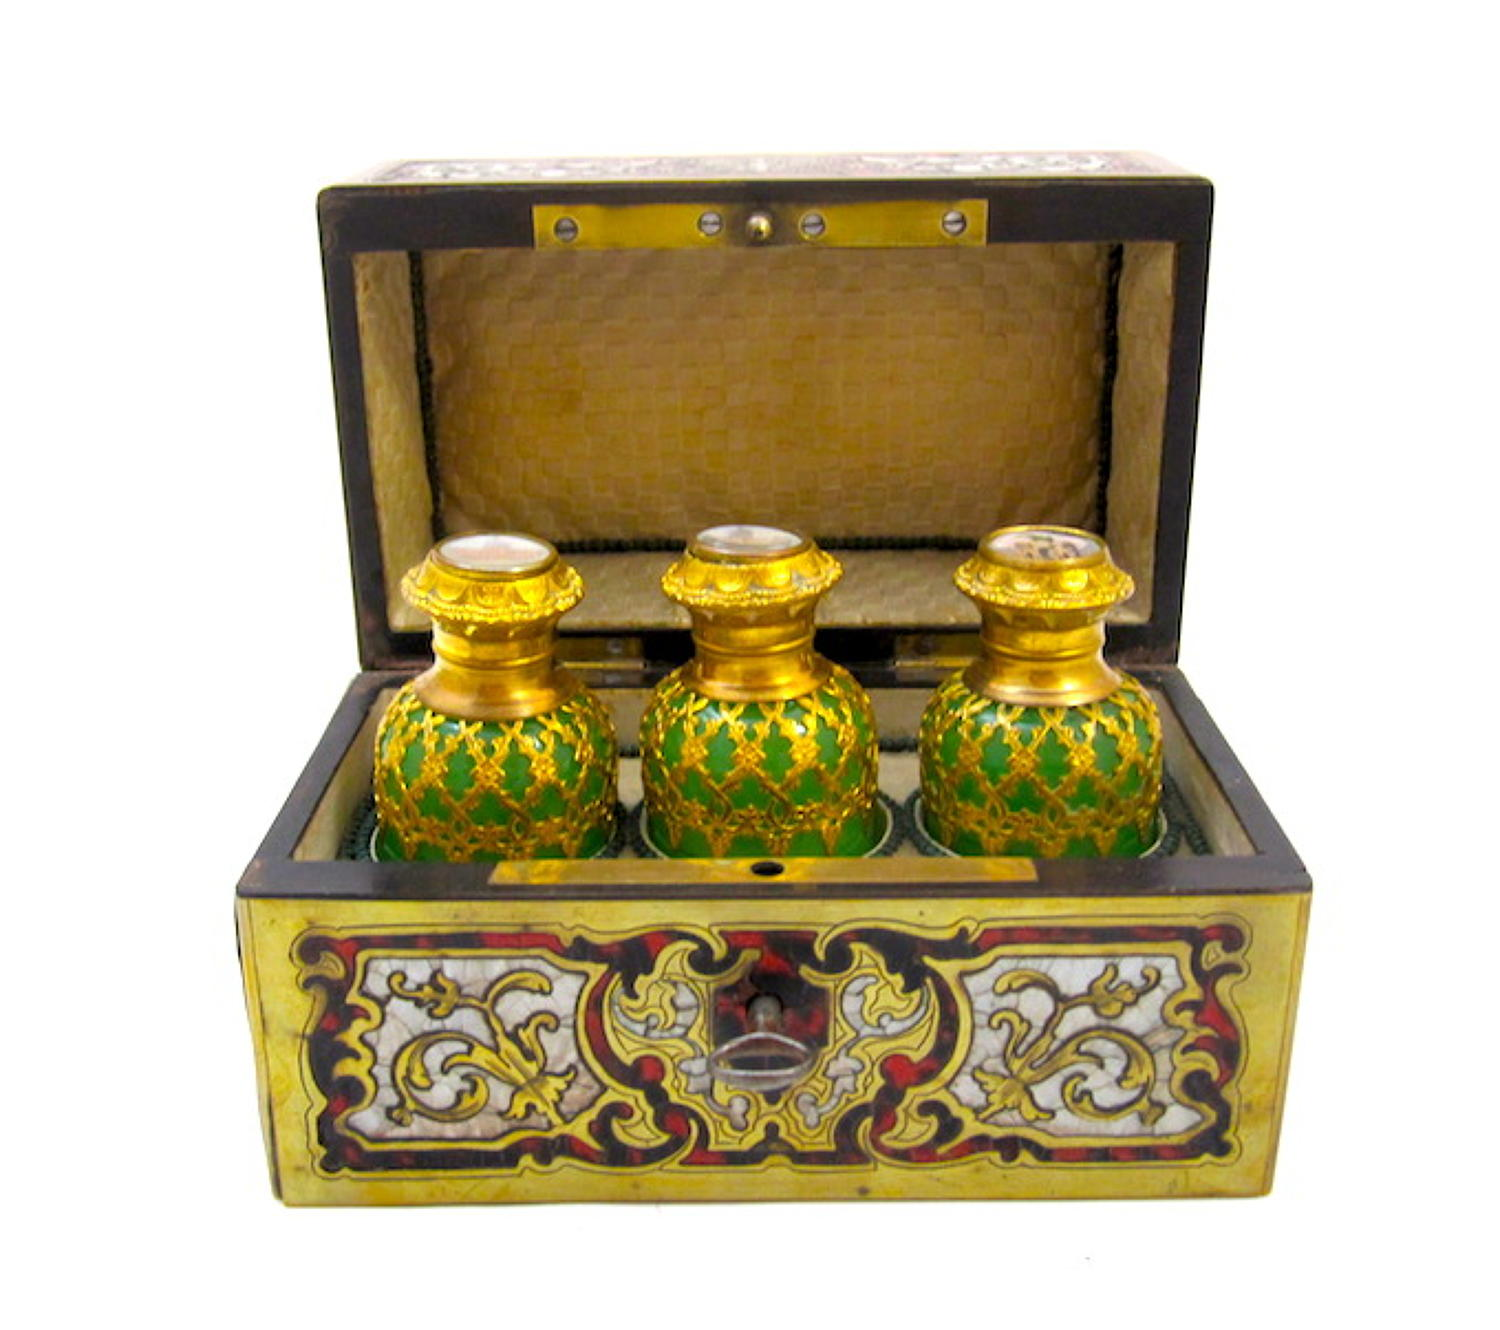 Rare Boulle Work Perfume Casket Box and Key